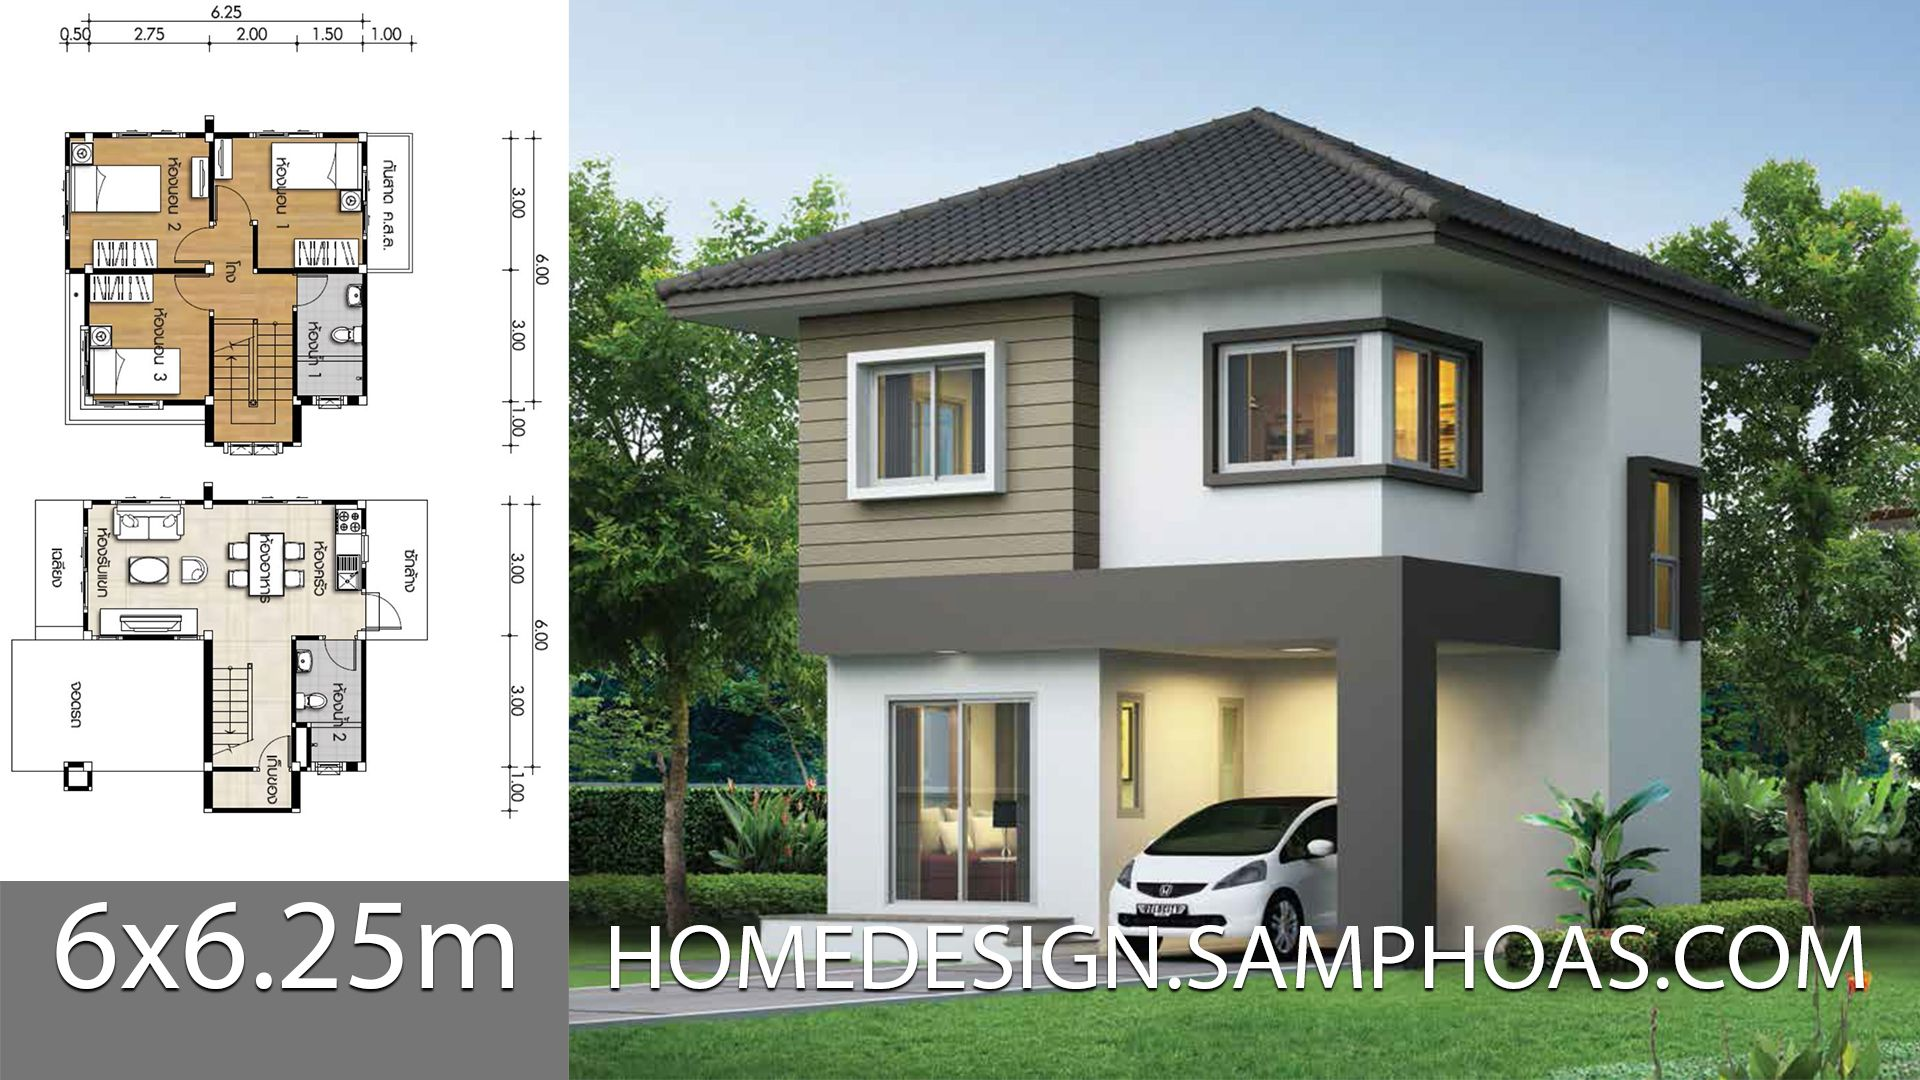 Small House Plan 6x6 25m With 3 Bedrooms House Description Ground Level One Car Parking Living Room Dini Small House Plan Two Storey House Plans Small House